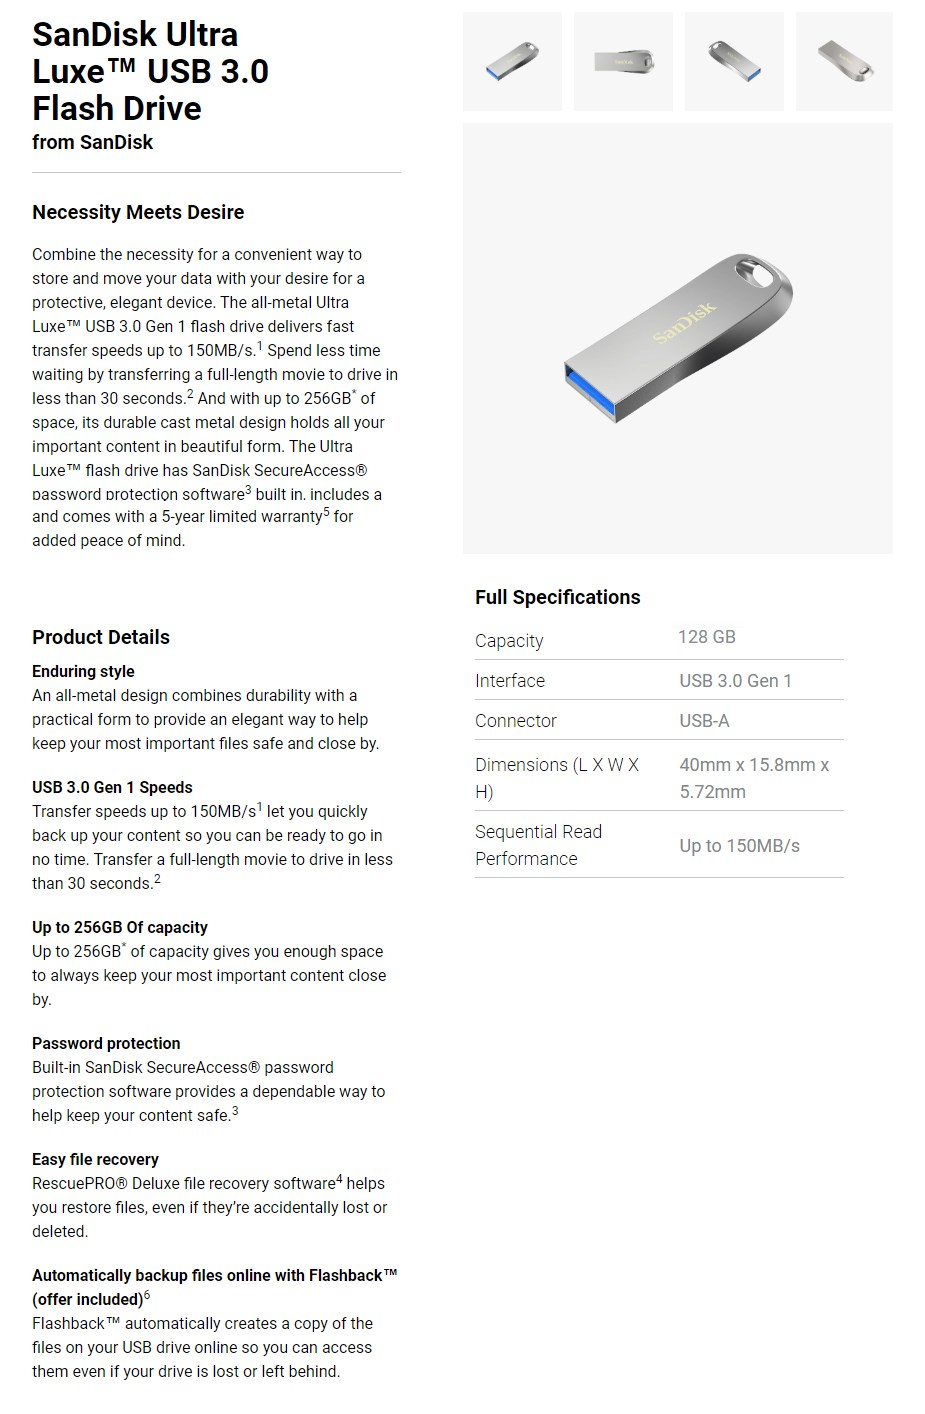 SanDisk 128GB Ultra Luxe USB 3.0 Flash Drive - Overview 1